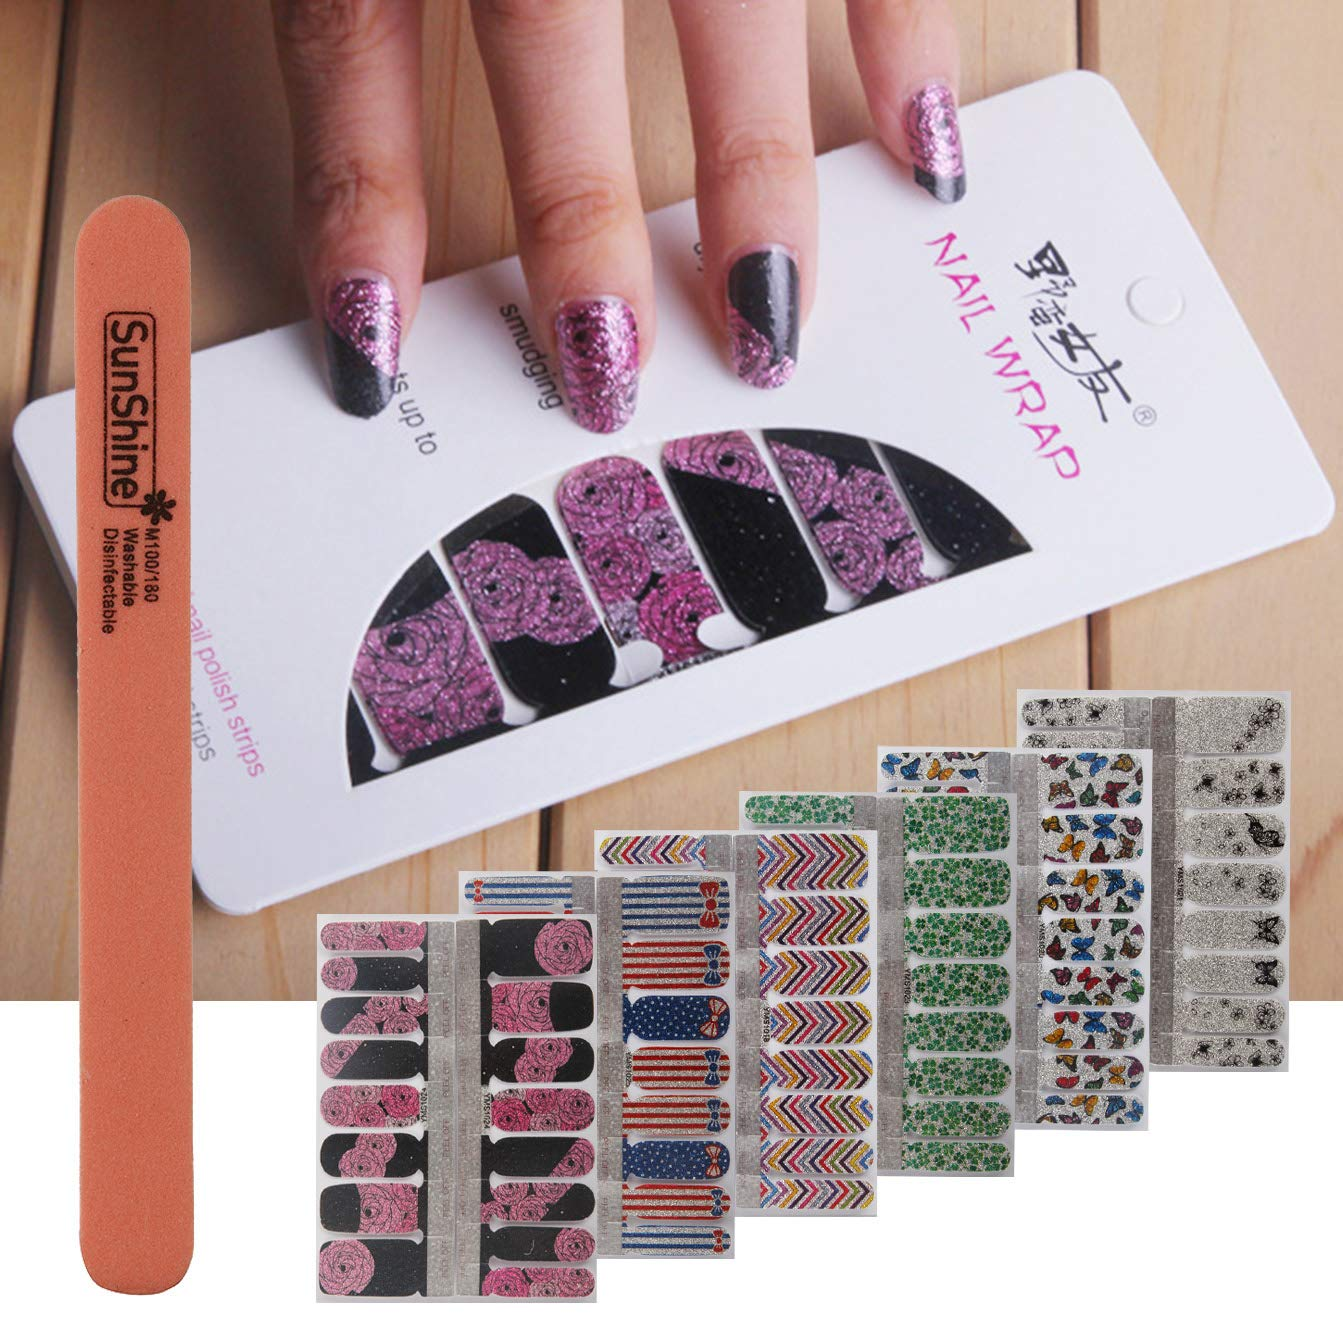 WOKOTO 6Pcs Nail Wraps For WomenSticker Nails With 1Pc Nail File Kit Full Nail Tips Stickers Wraps For Nails